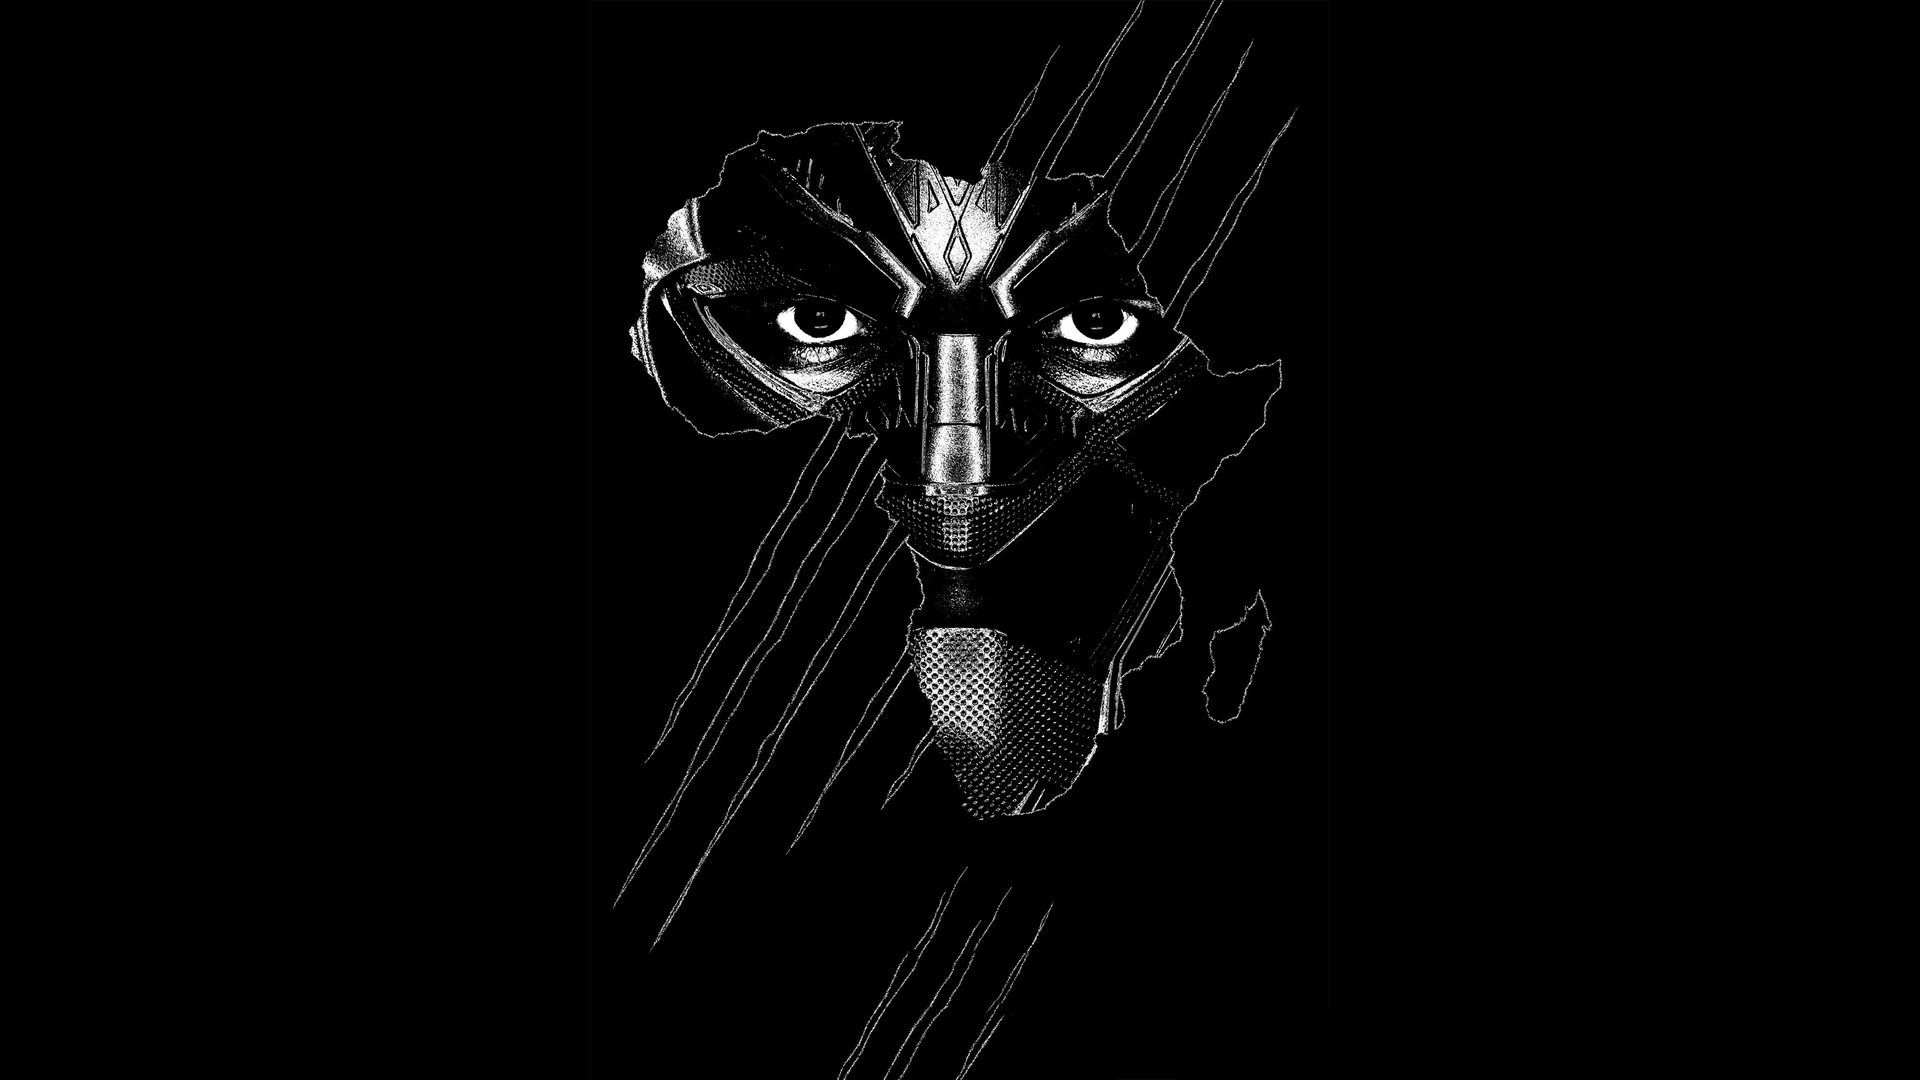 1920x1080 Black Panther Real 3d Poster Laptop Full Hd 1080p